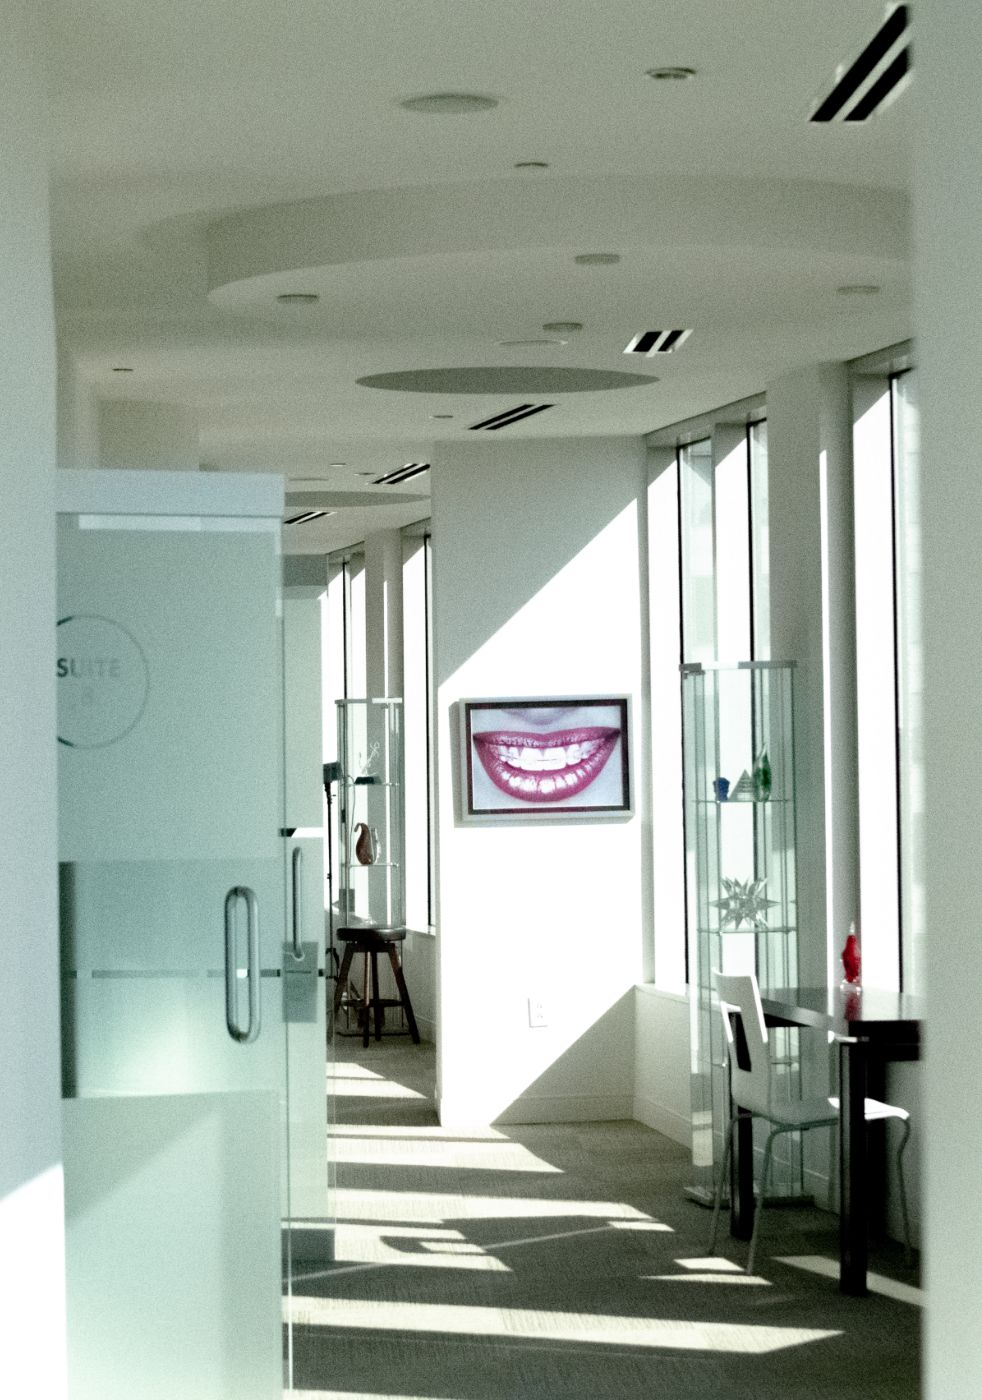 inside office with artwork and tv